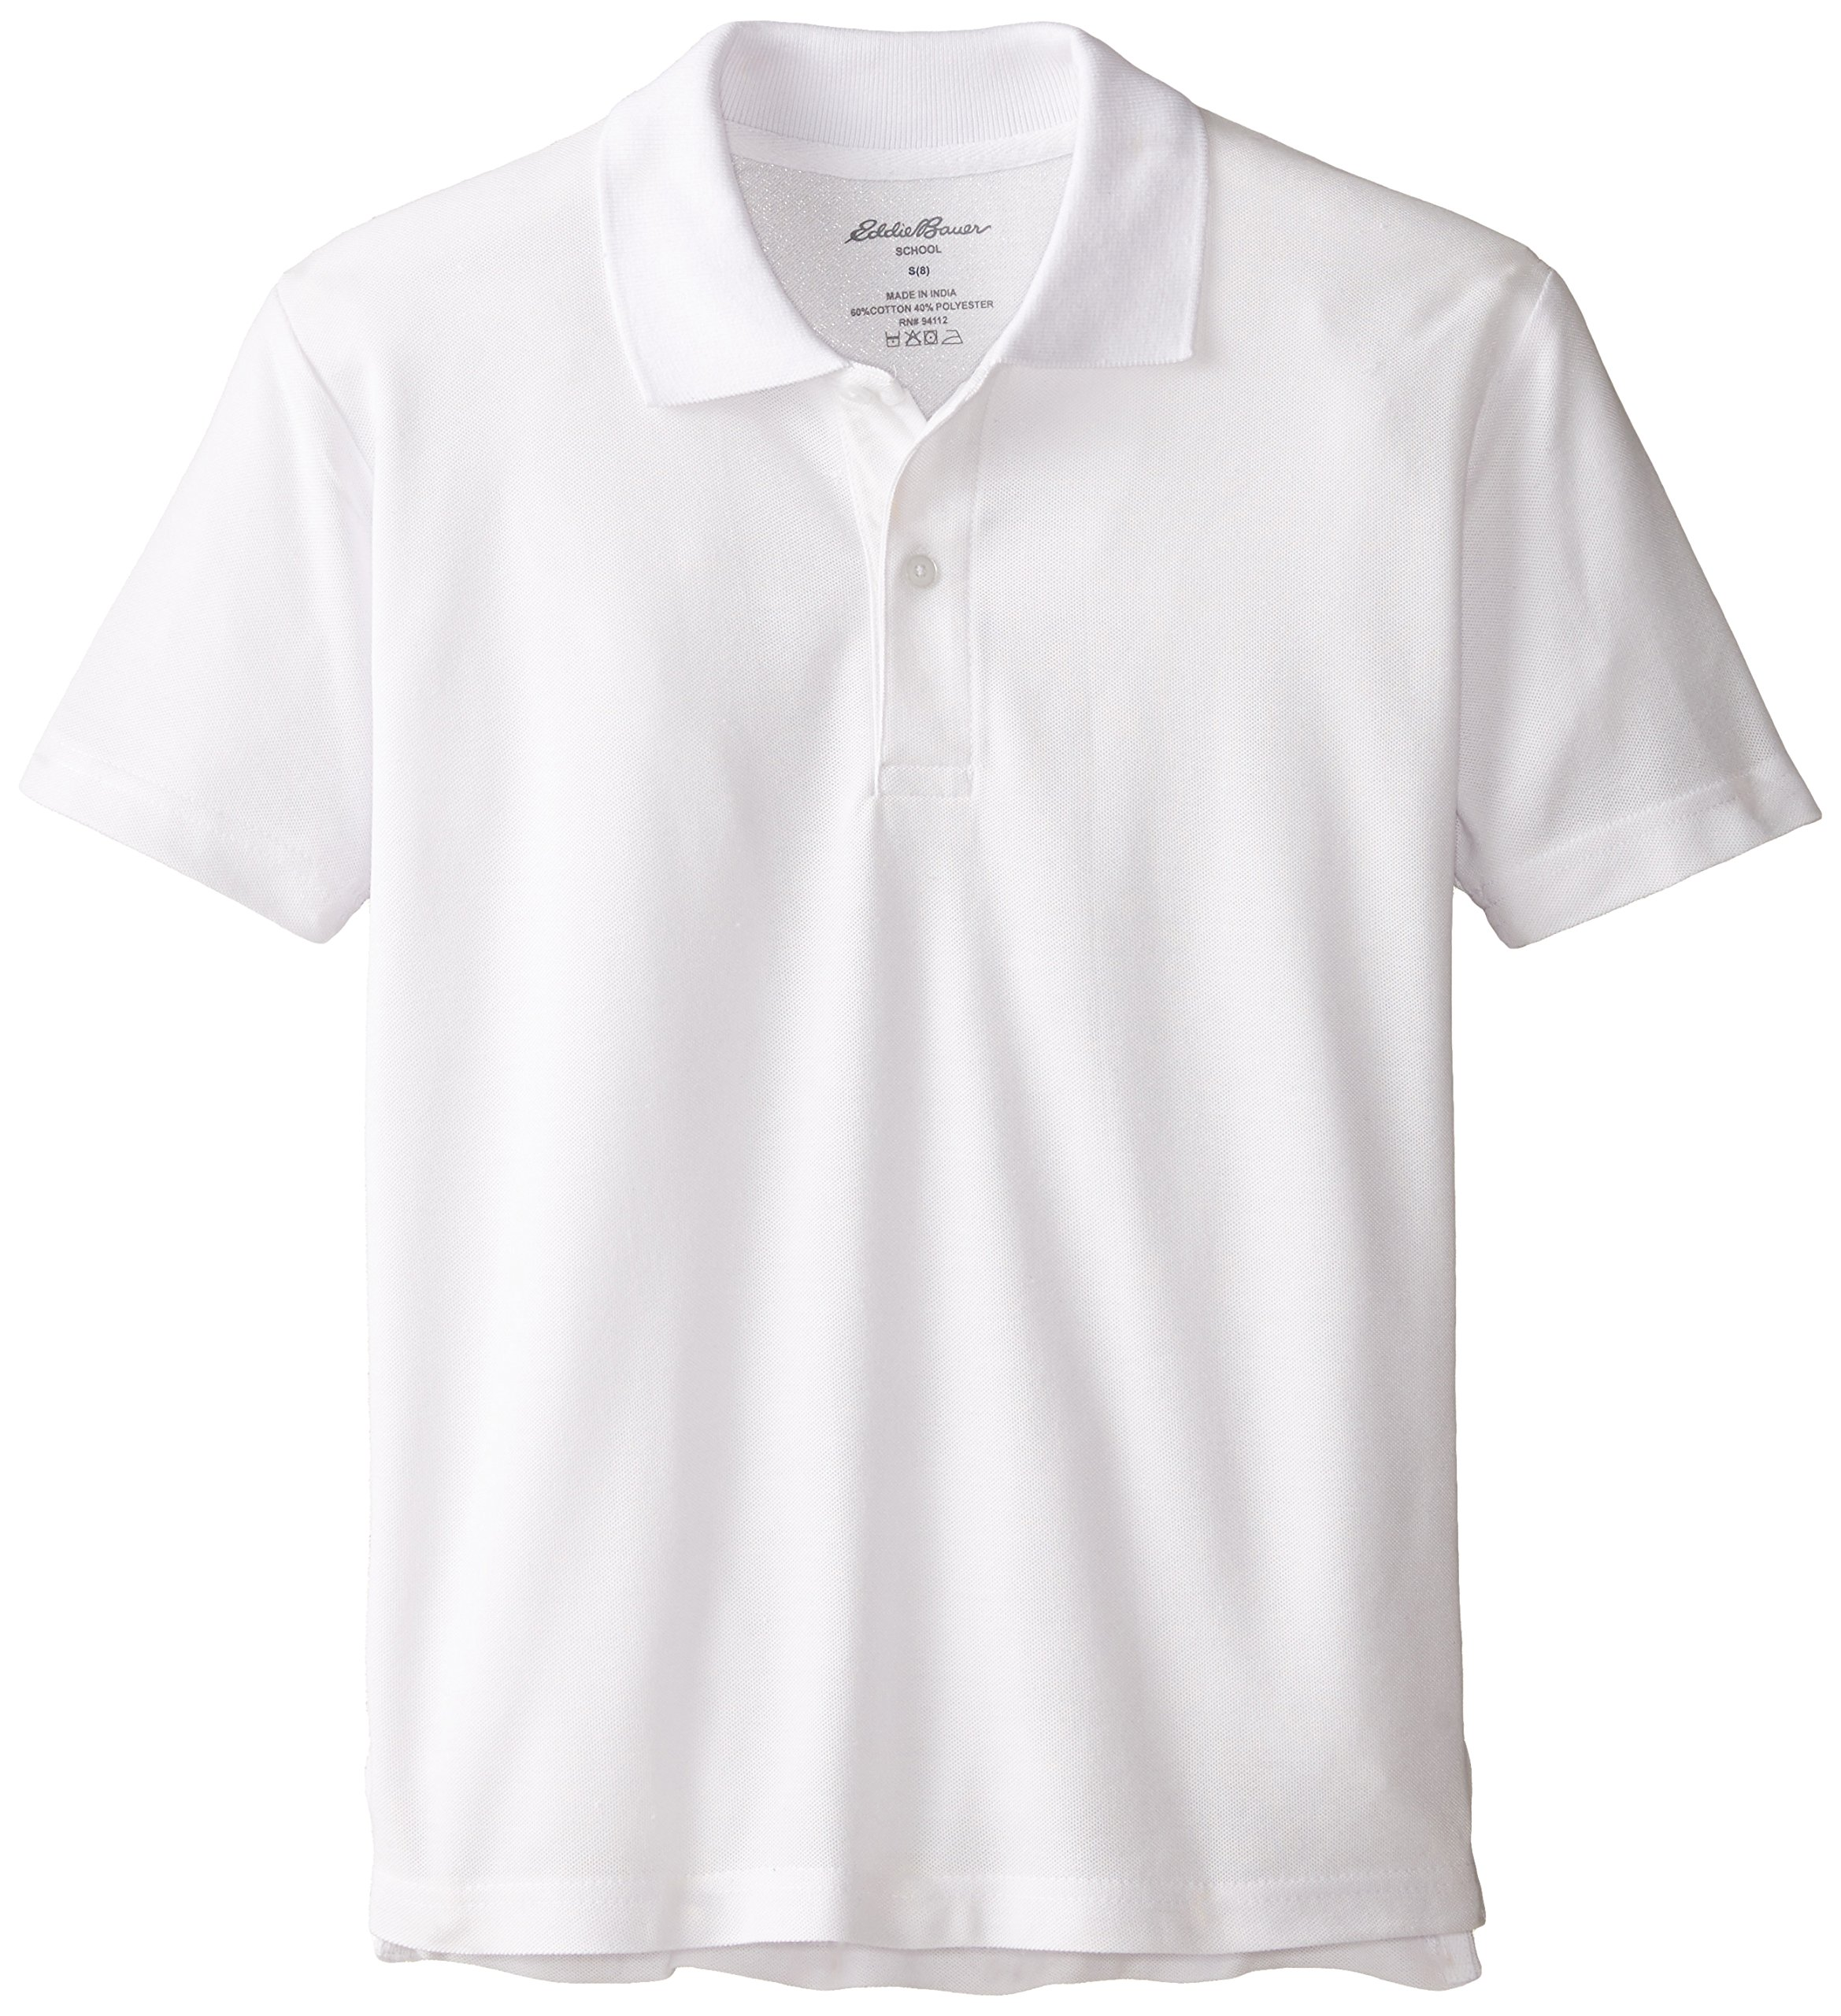 Eddie Bauer Boys' Short Long Sleeve Polo Shirt (More Styles Available), Performance White, 10/12 by Eddie Bauer (Image #1)